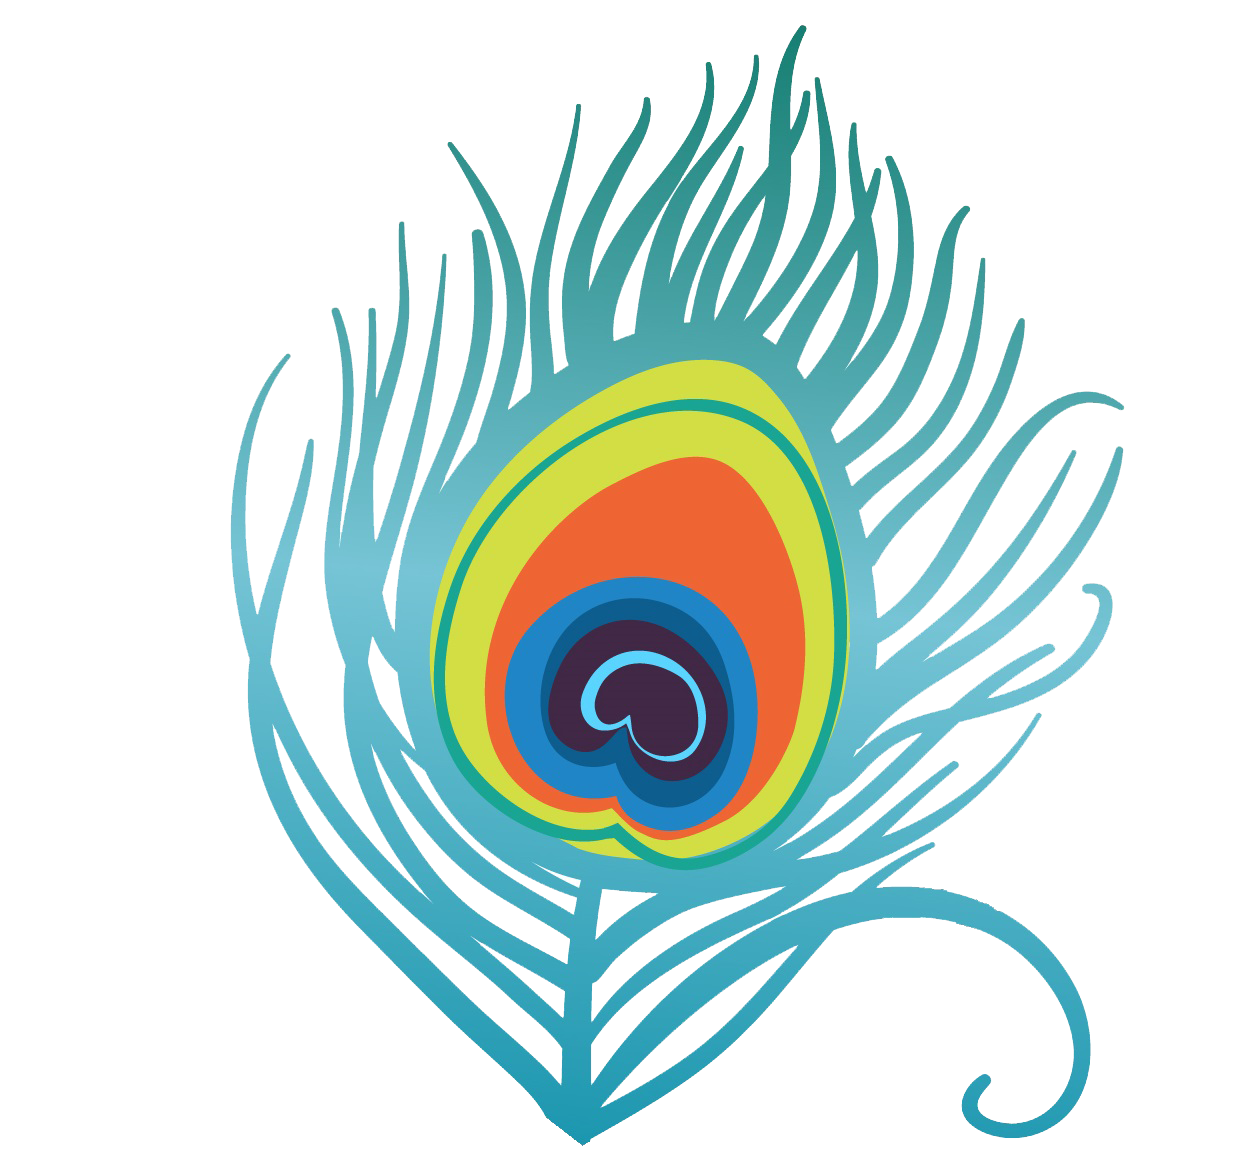 Flutes clipart mor pankh. Peacock feather png transparent